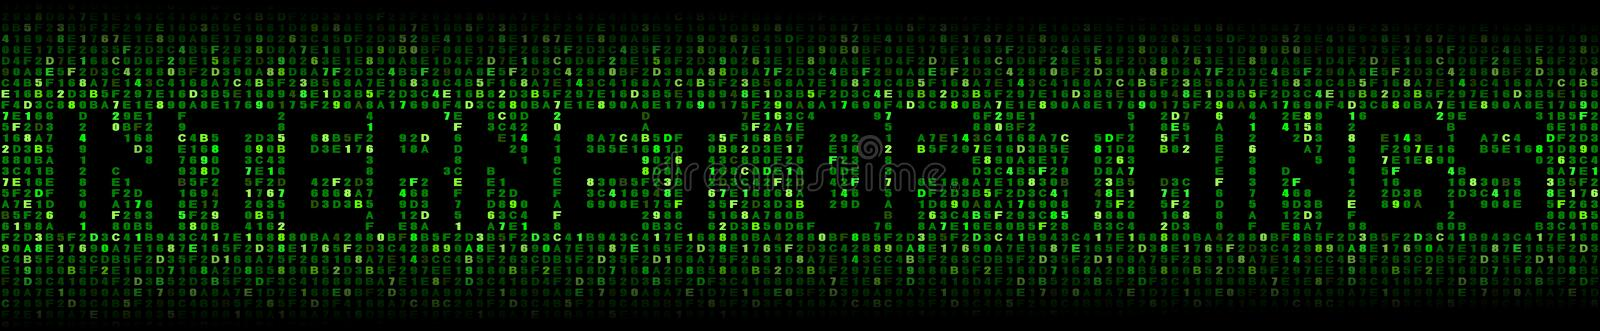 Internet of things text on hex illustration royalty free stock photos